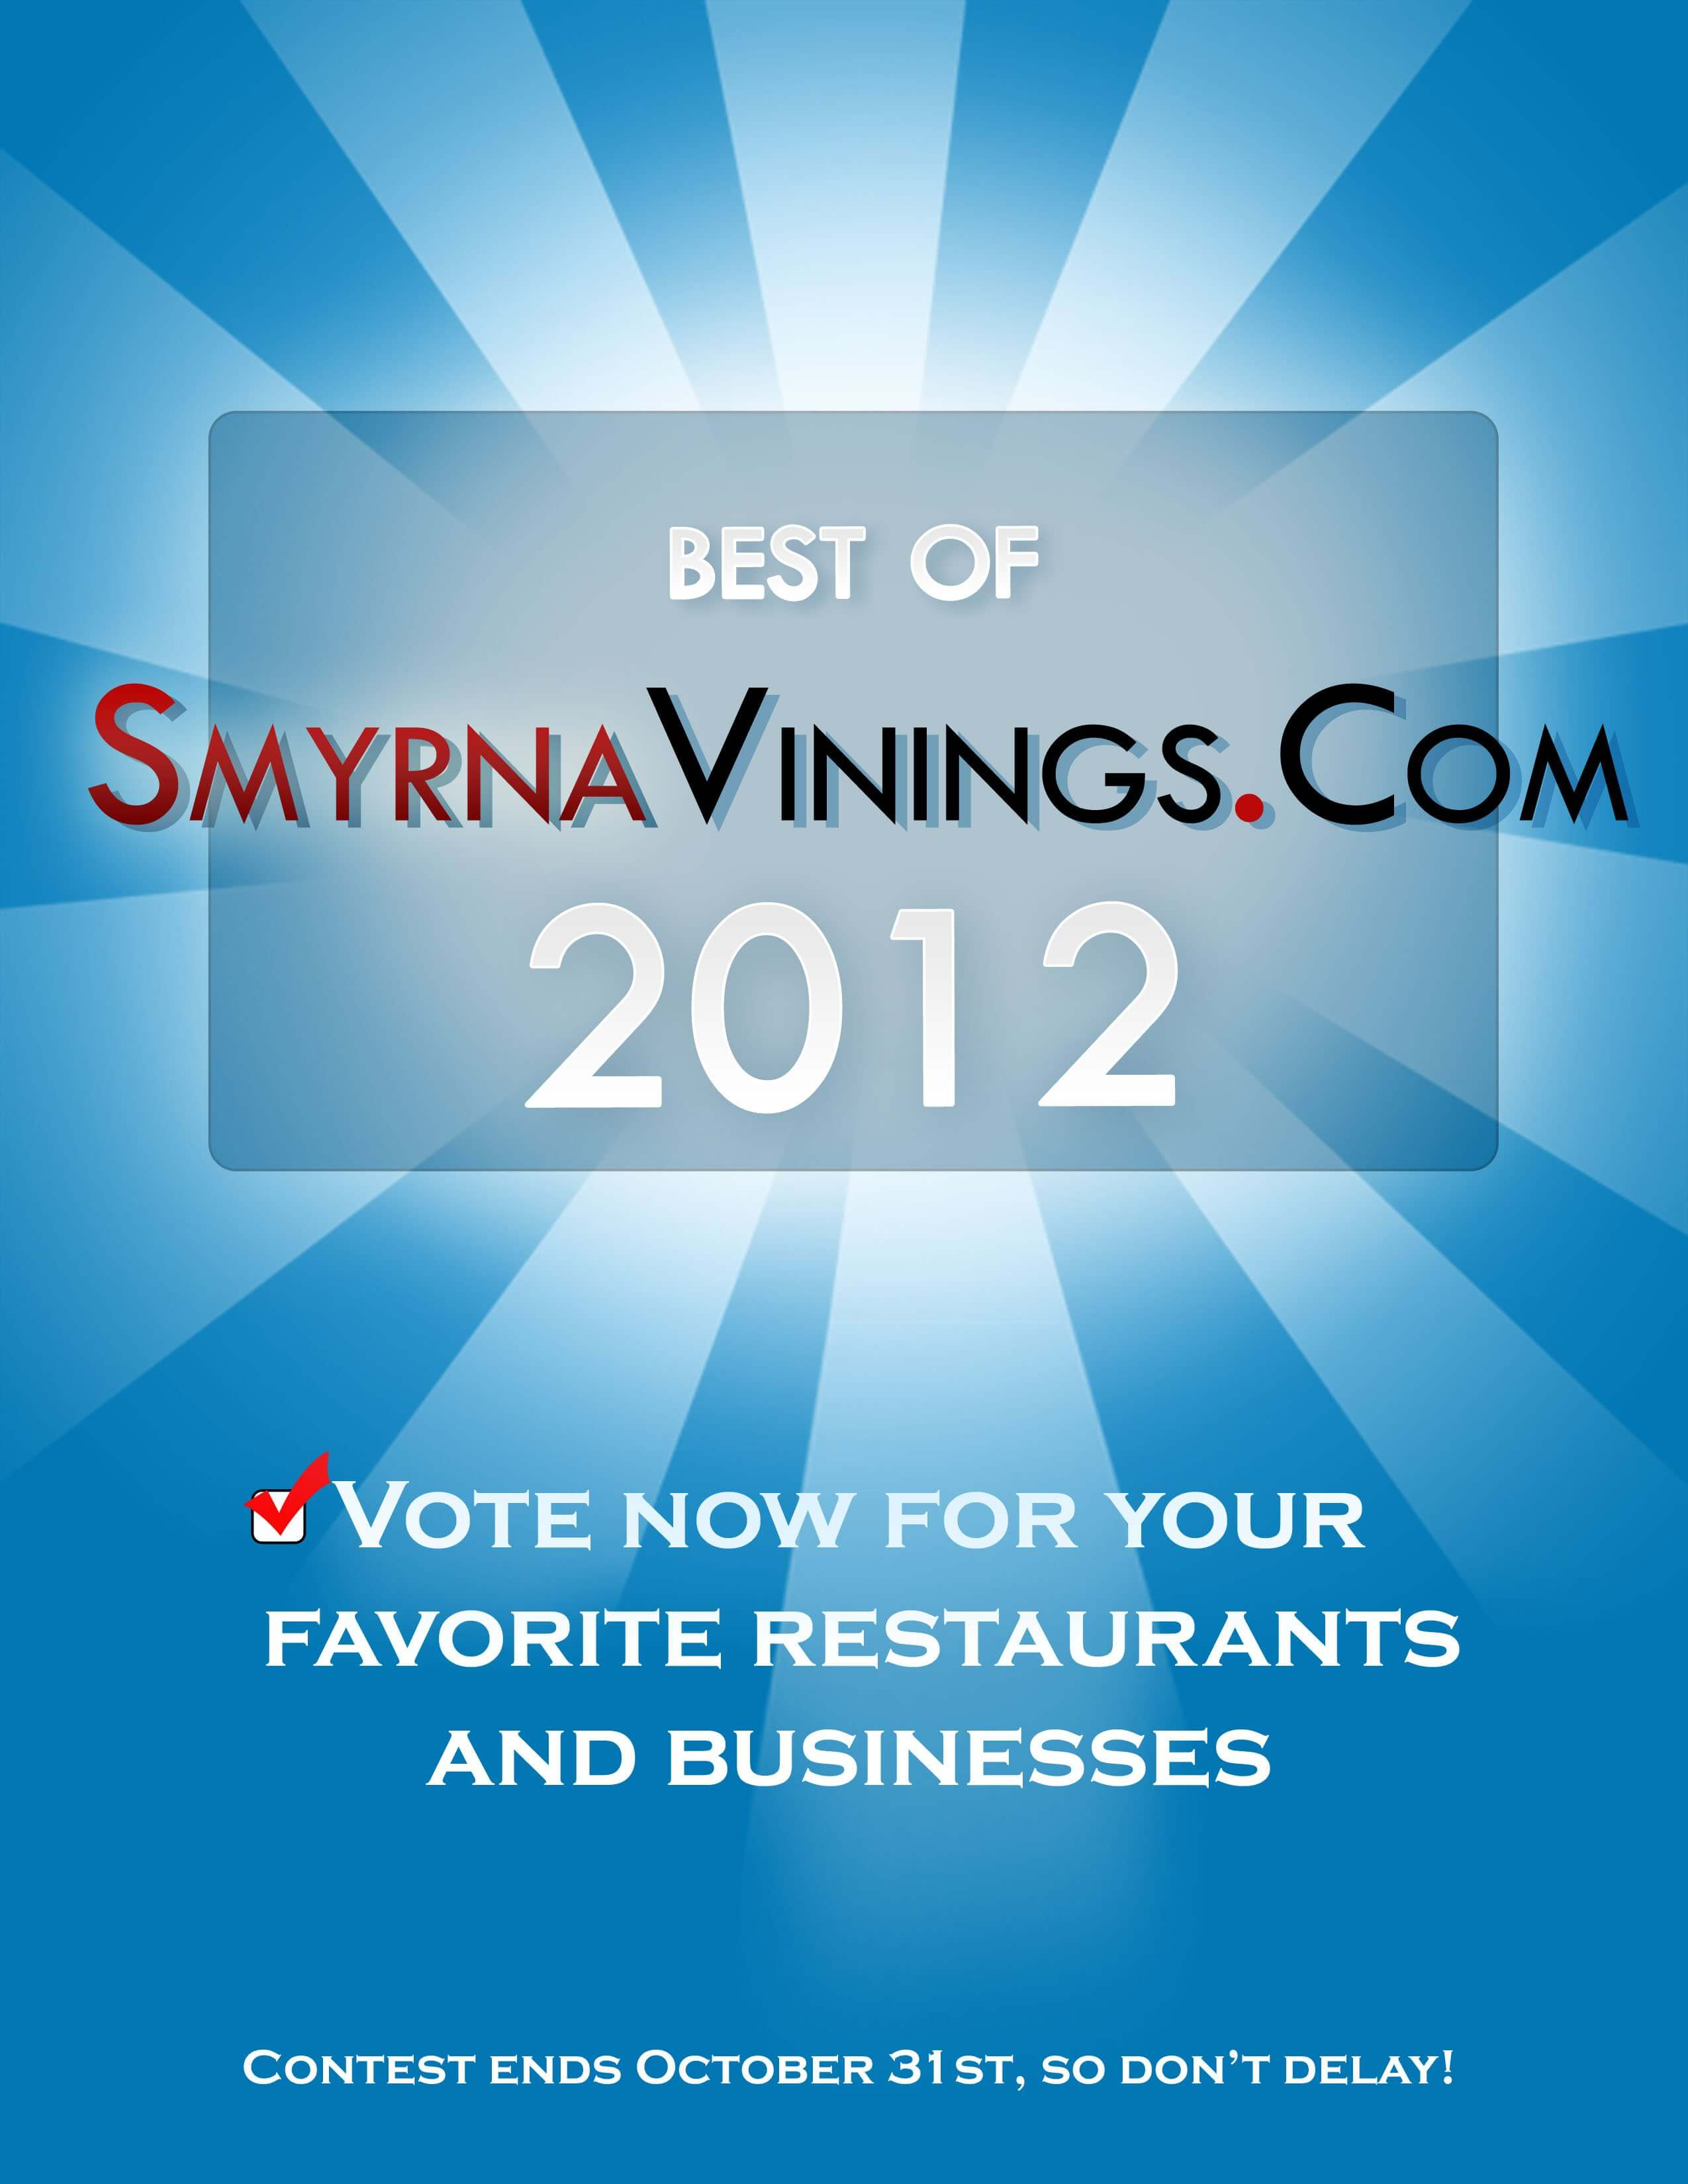 Best of Smyrna Vinings 2012